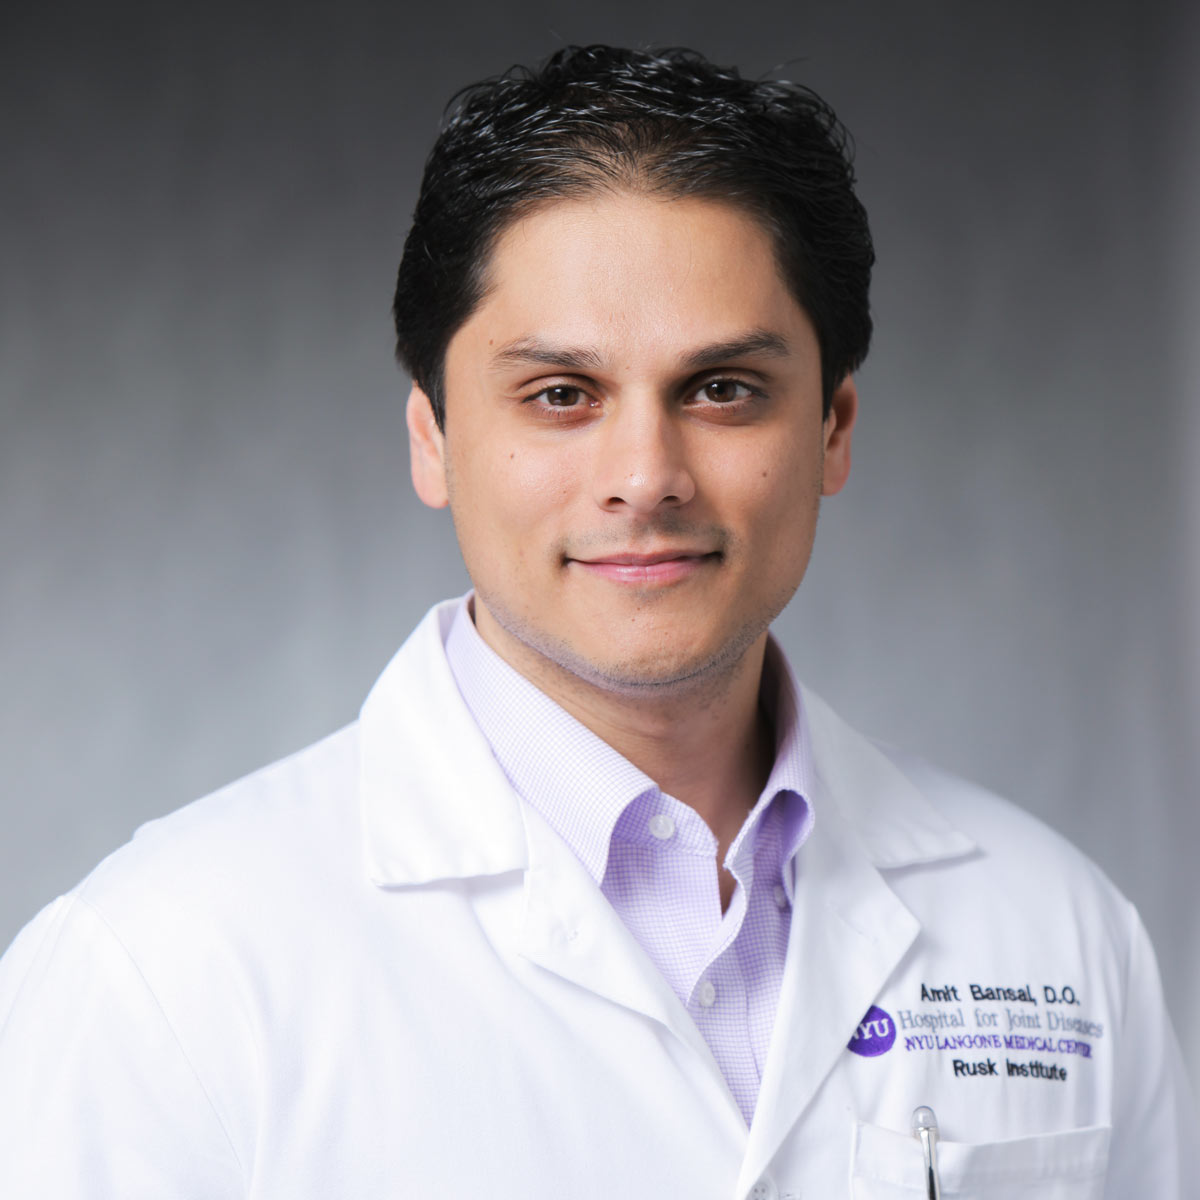 Amit Bansal at [NYU Langone Medical Center]